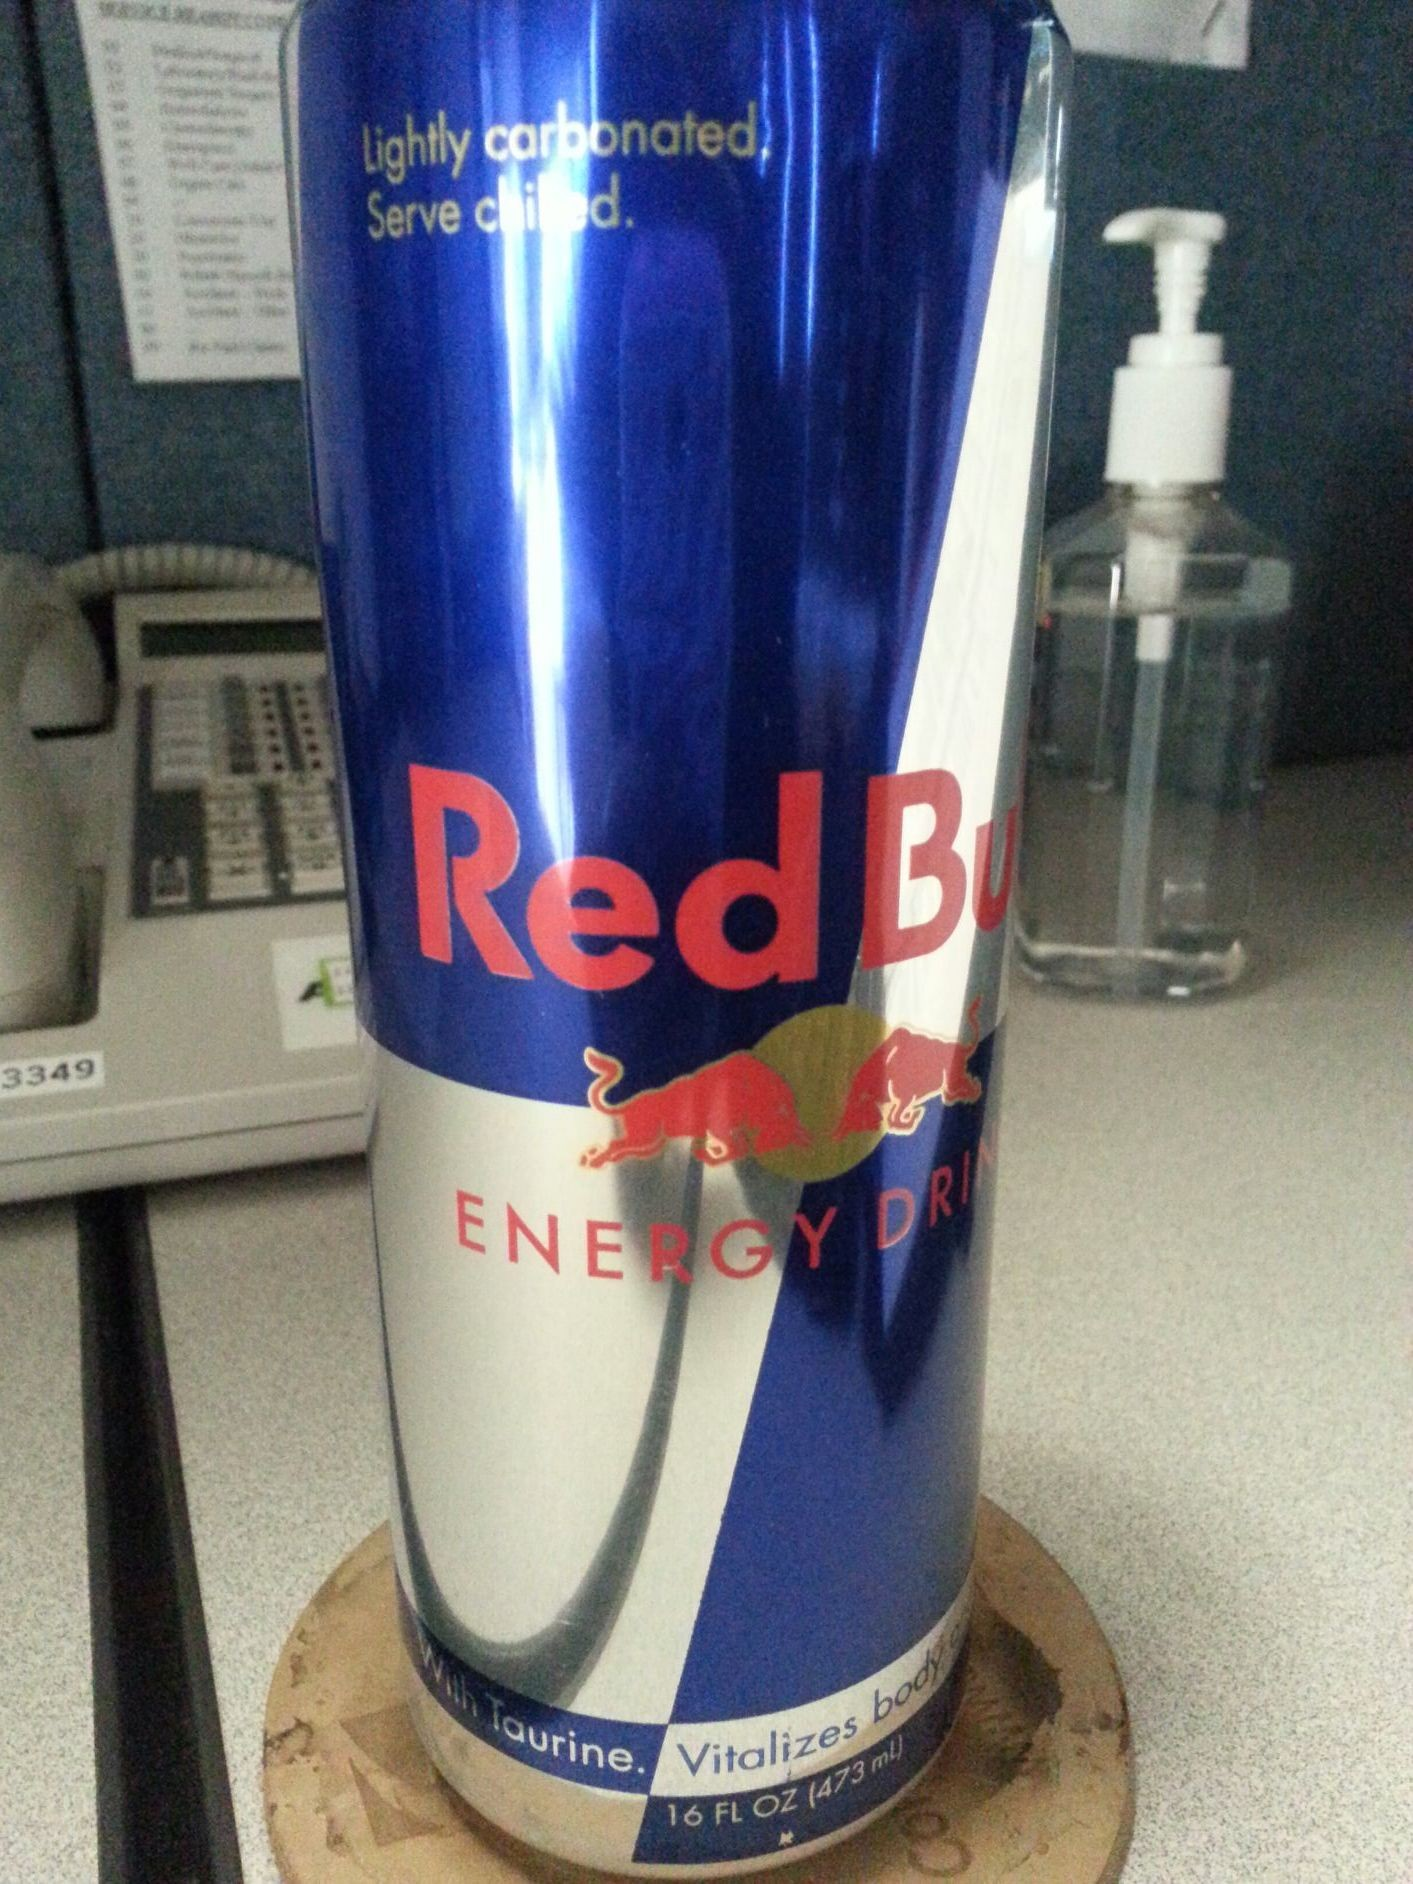 I'm gonna need more than 1 to get through the day.....